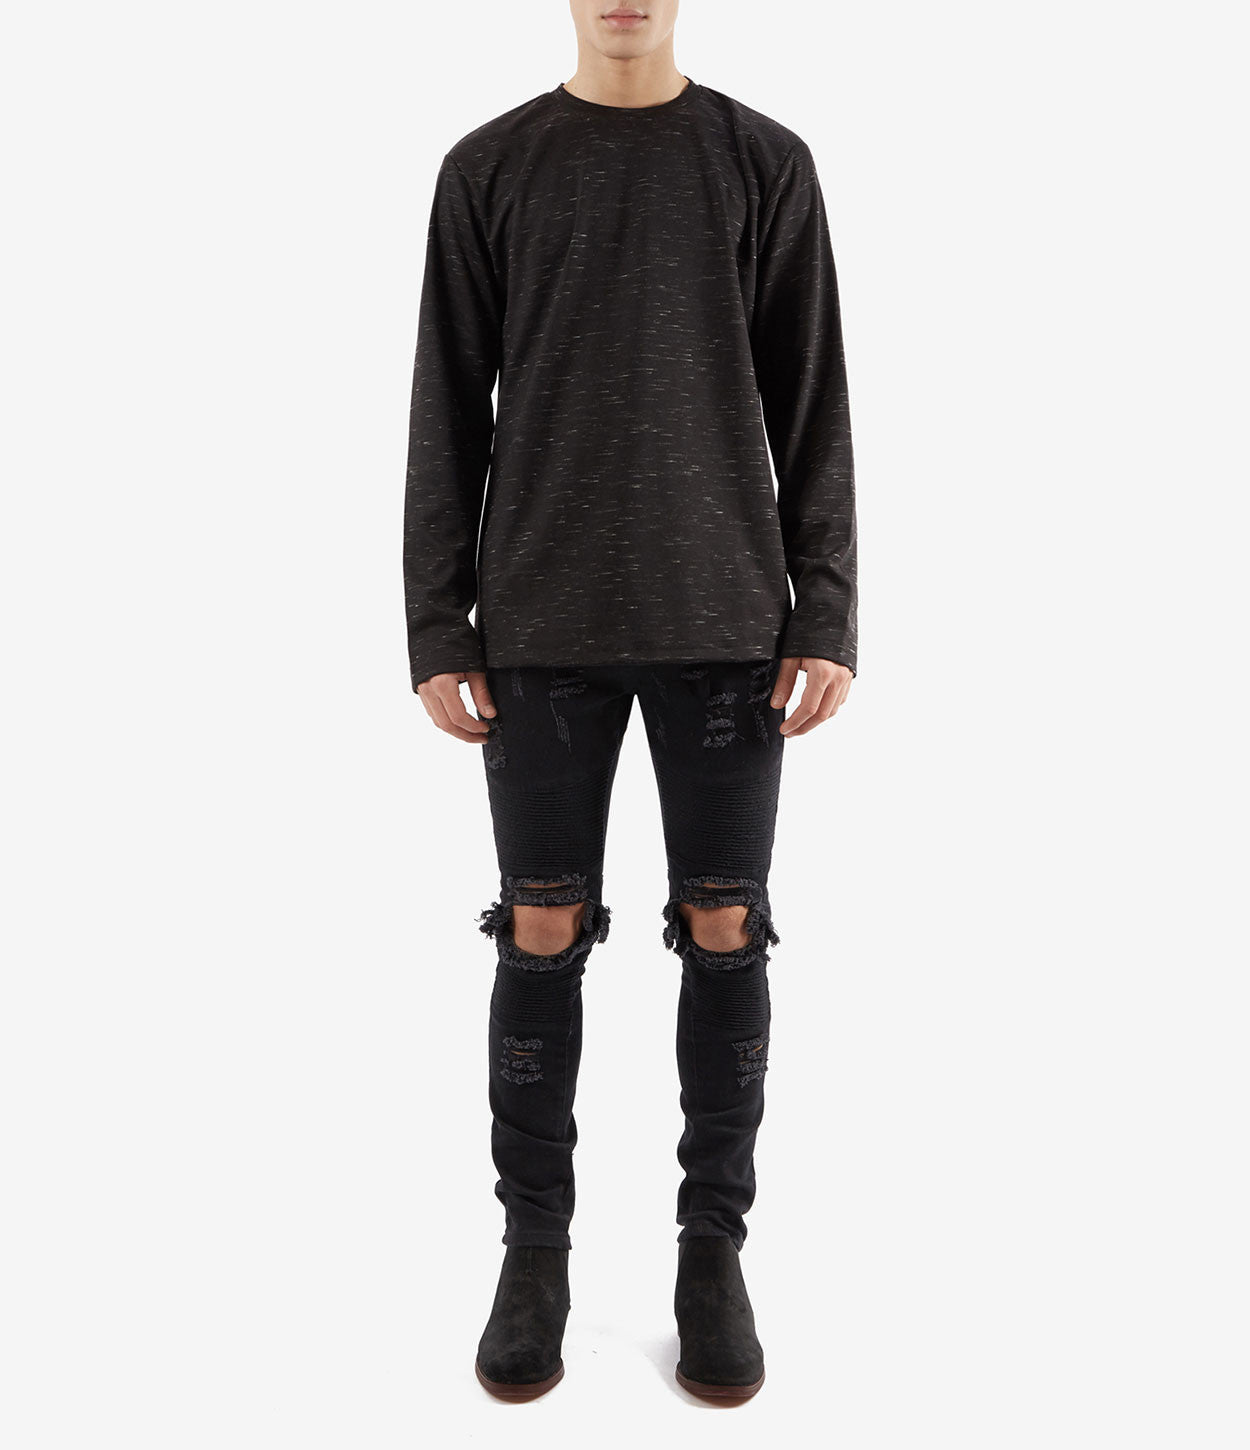 TS379 Knit Jersey L/S Tee - Black - underated london - underatedco - 2